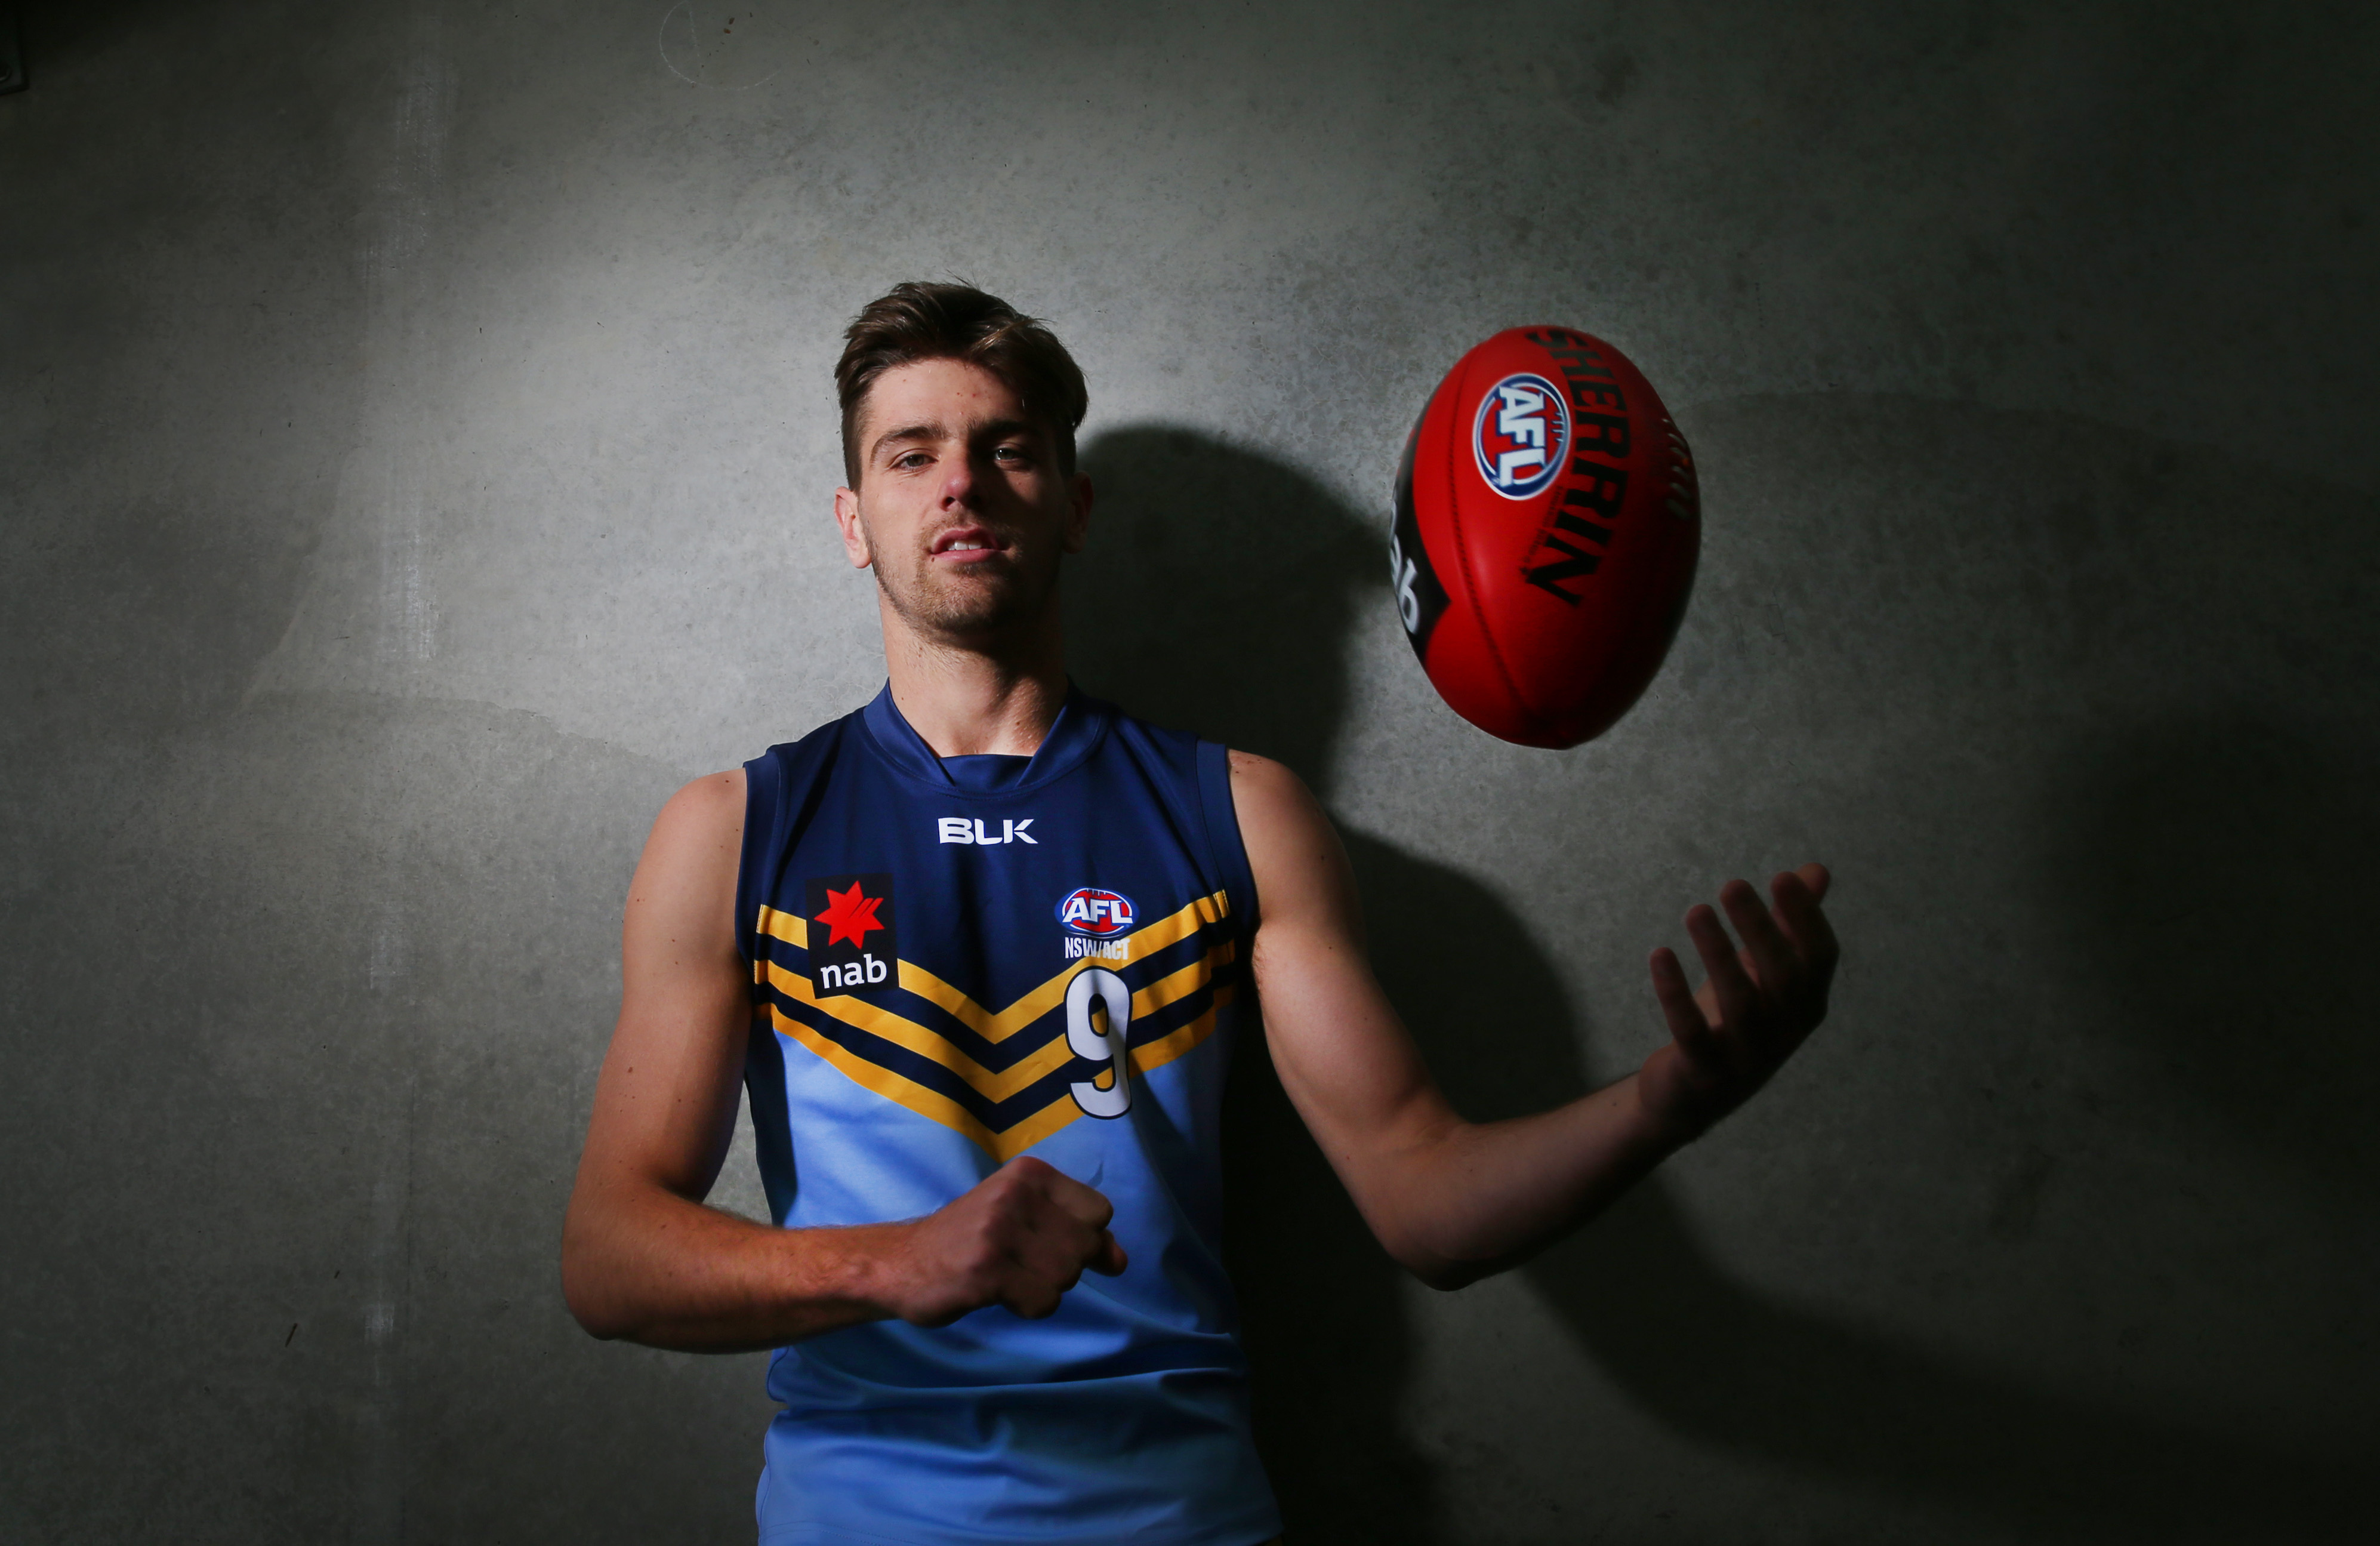 Jock Cornell of NSW/ACT poses during the 2015 AFL Under 18 portrait session at Simonds Stadium, Geelong on June 27, 2015. (Photo by Michael Dodge/AFL Media)